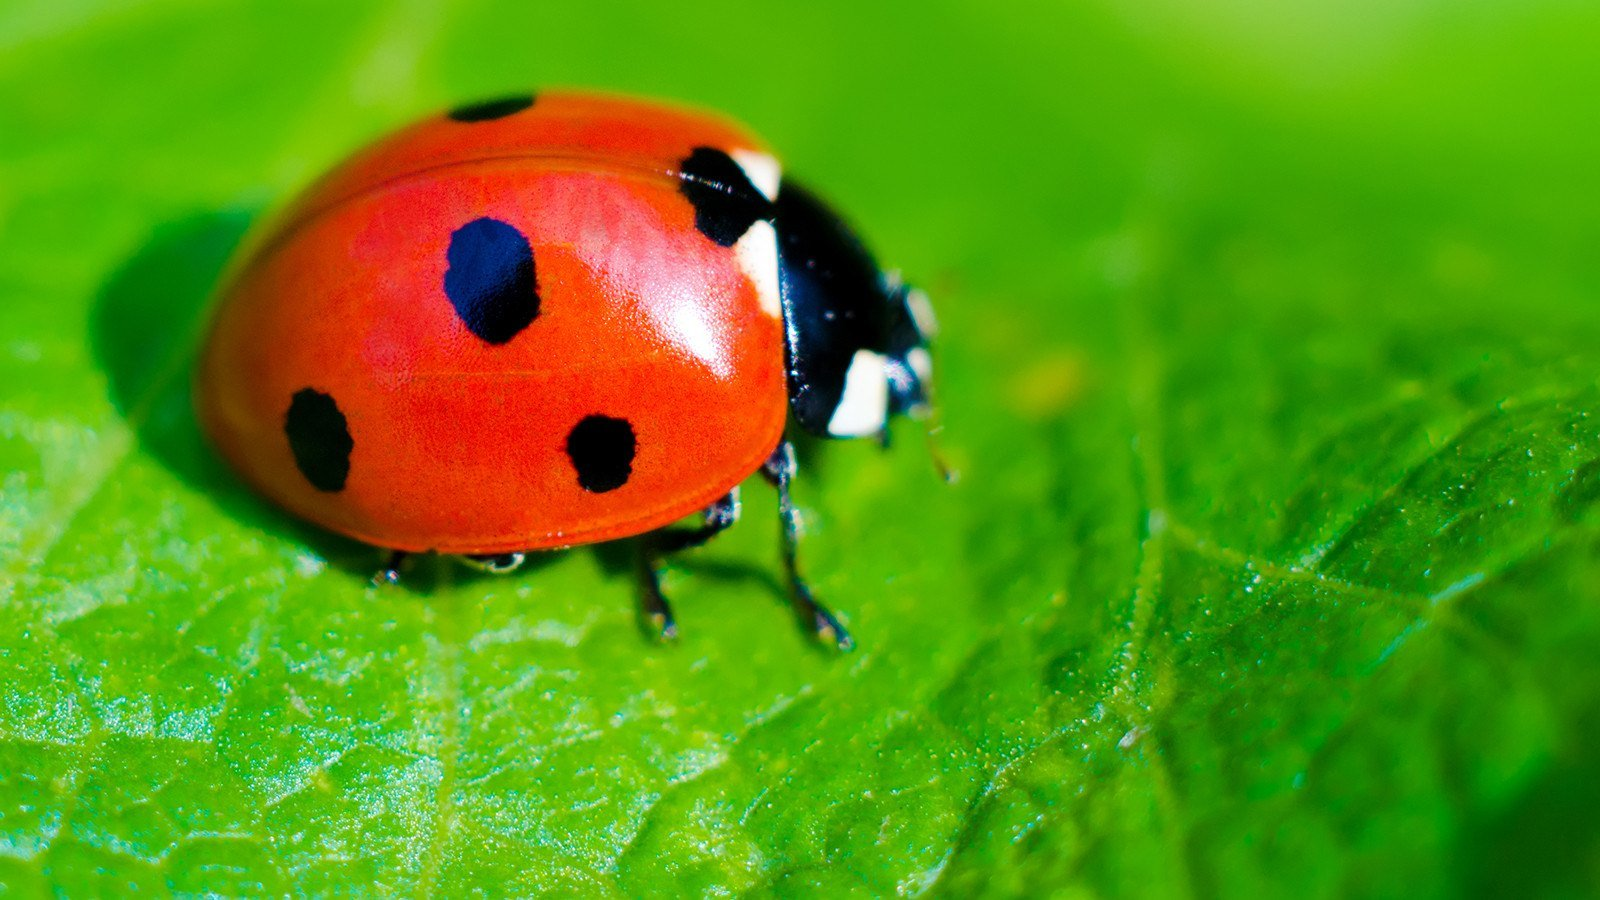 Ladybug on green leaf.